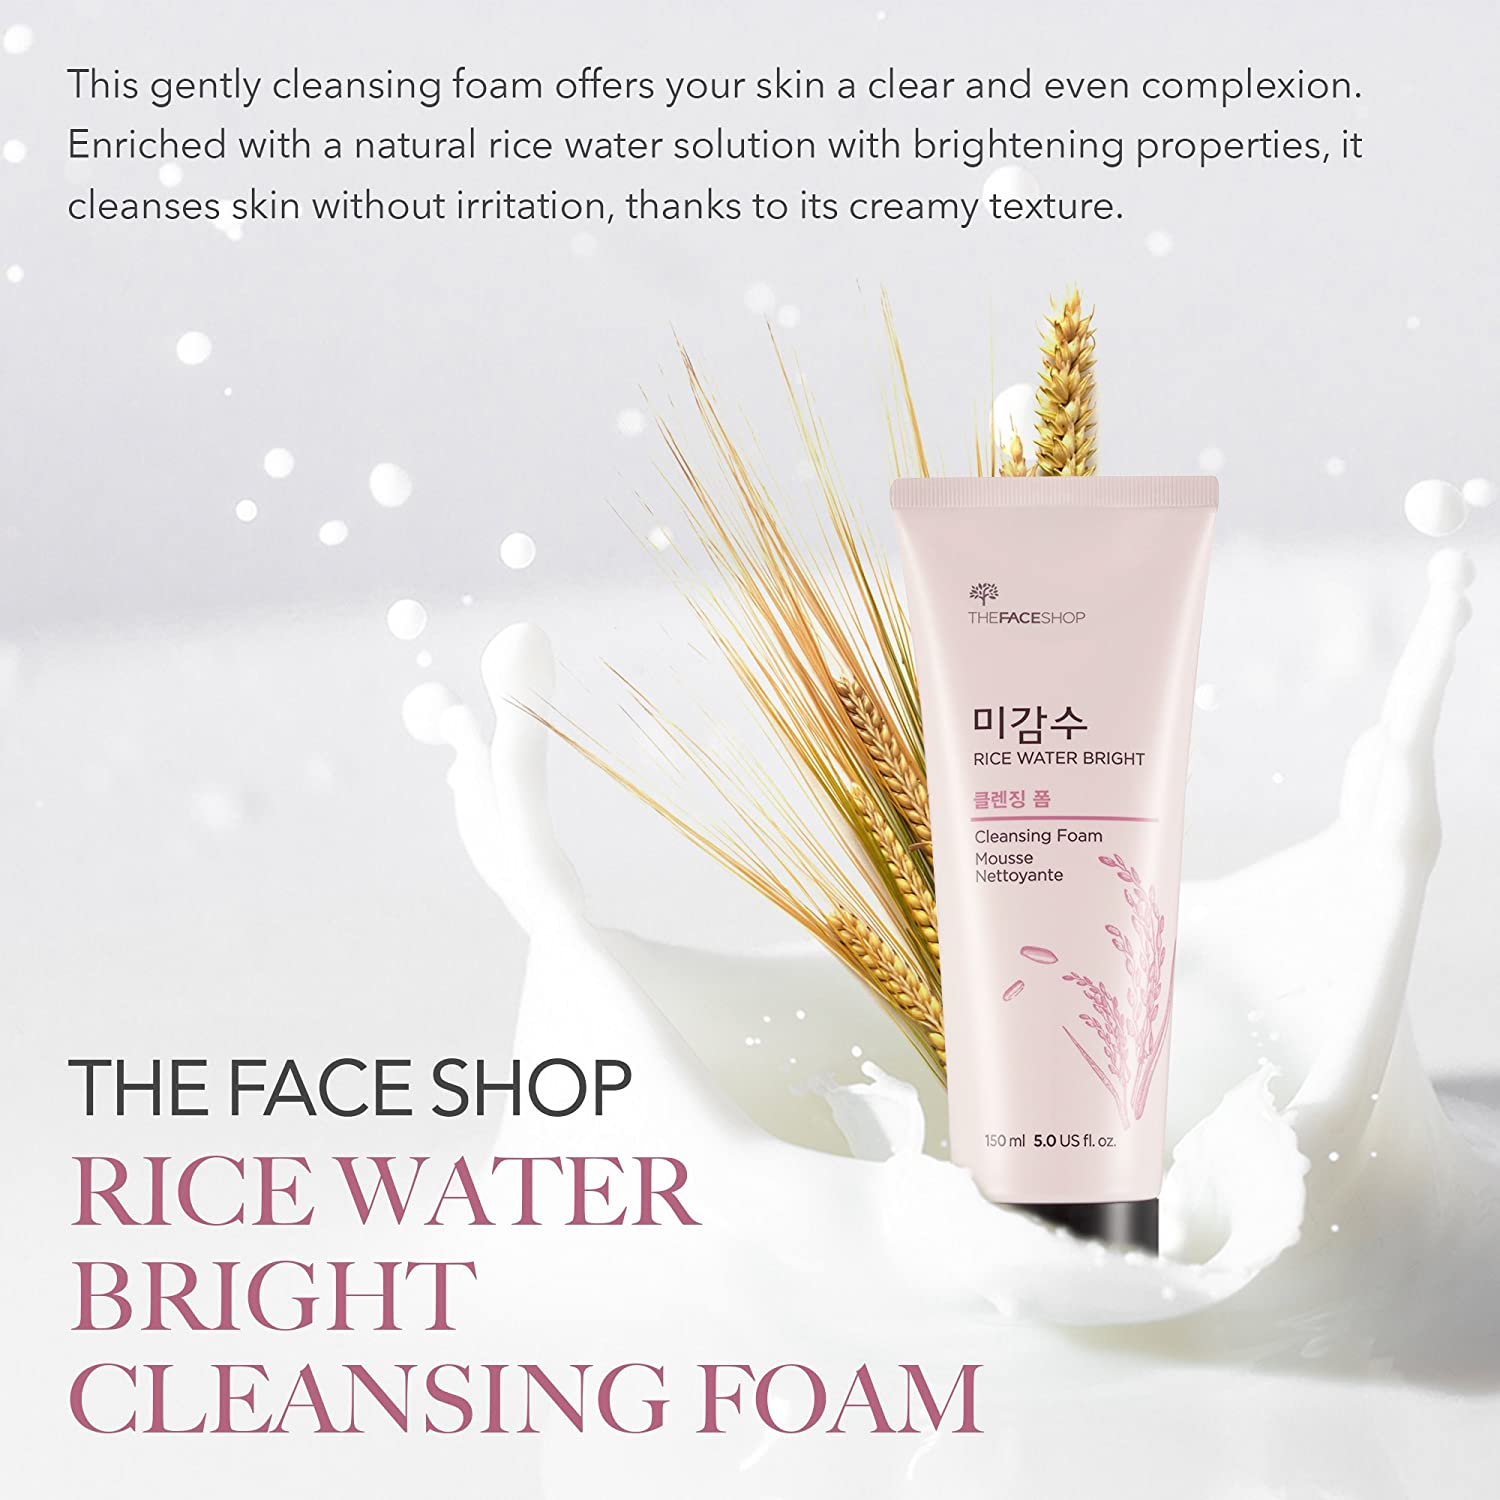 a5481ab25c38 [THEFACESHOP] Rice Water Bright Foaming Cleanser with Rice Bran for  Removing Dead Skin,...